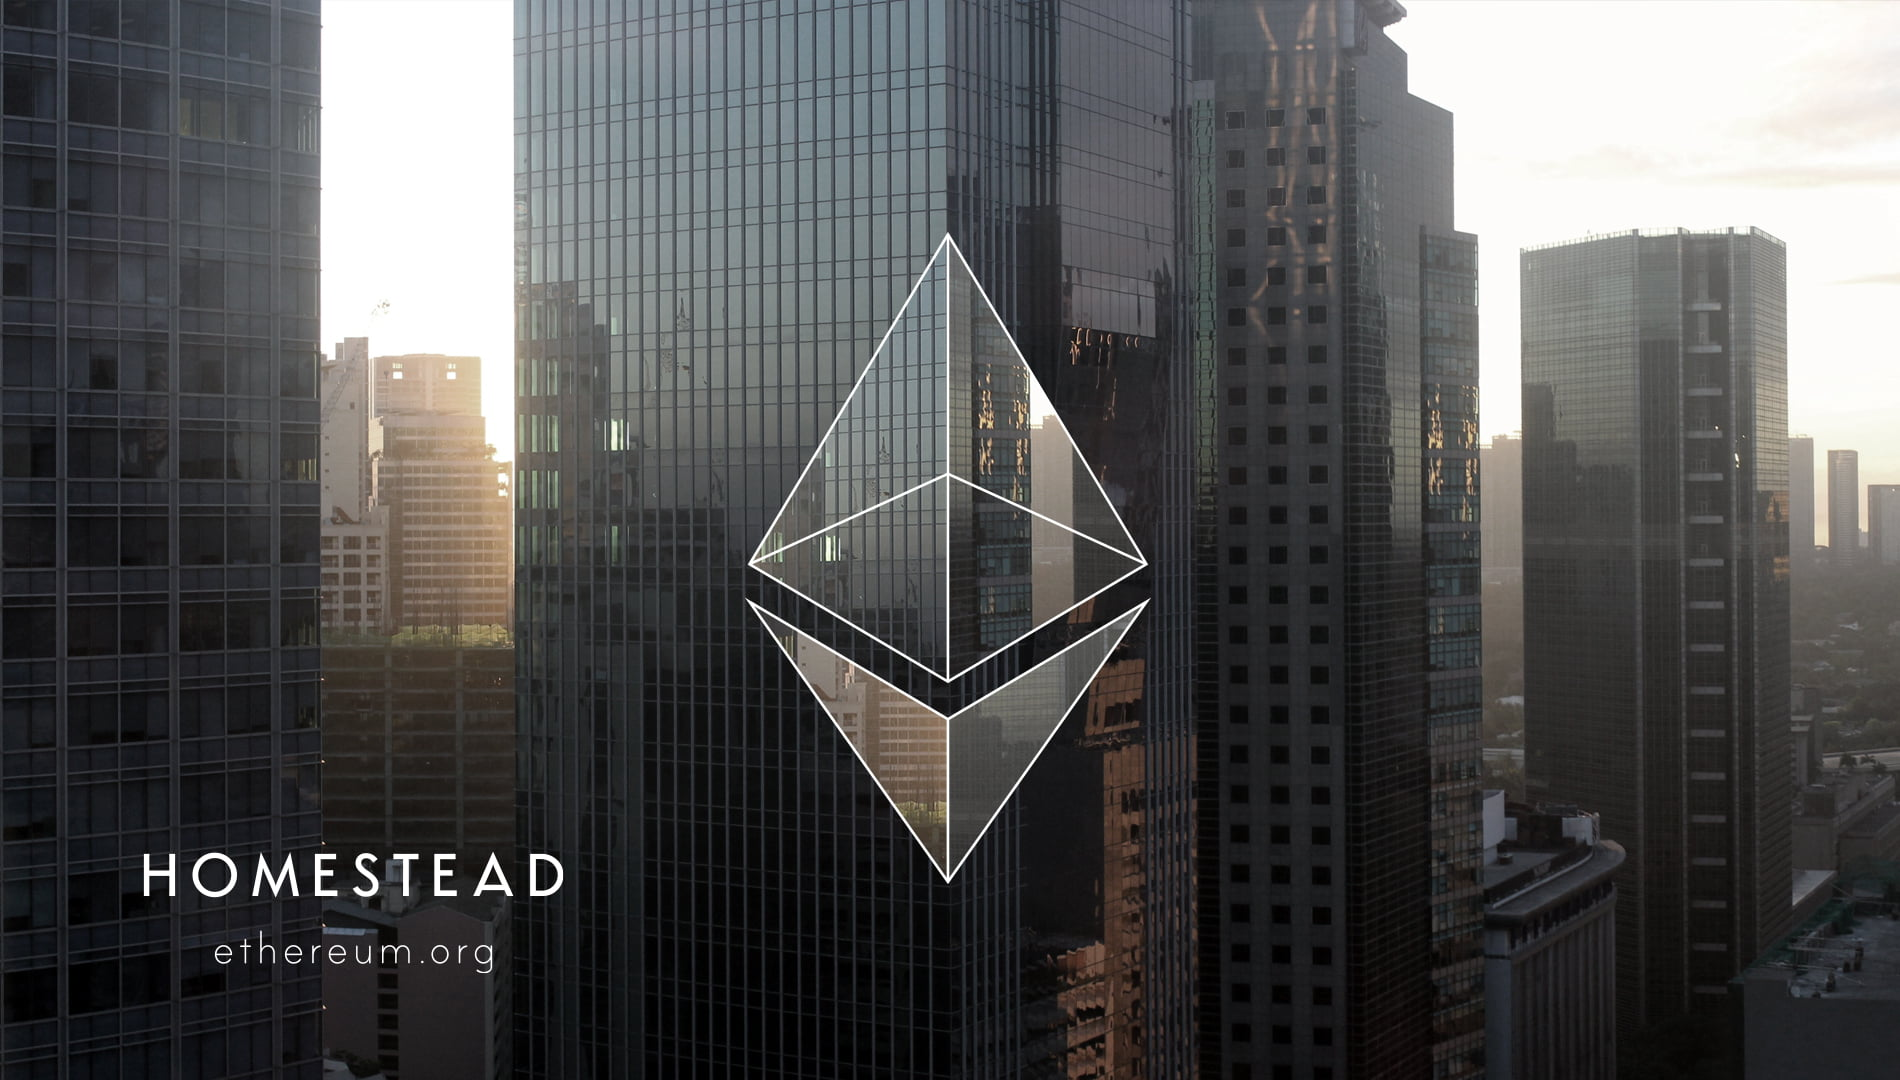 Ethereum homestead background